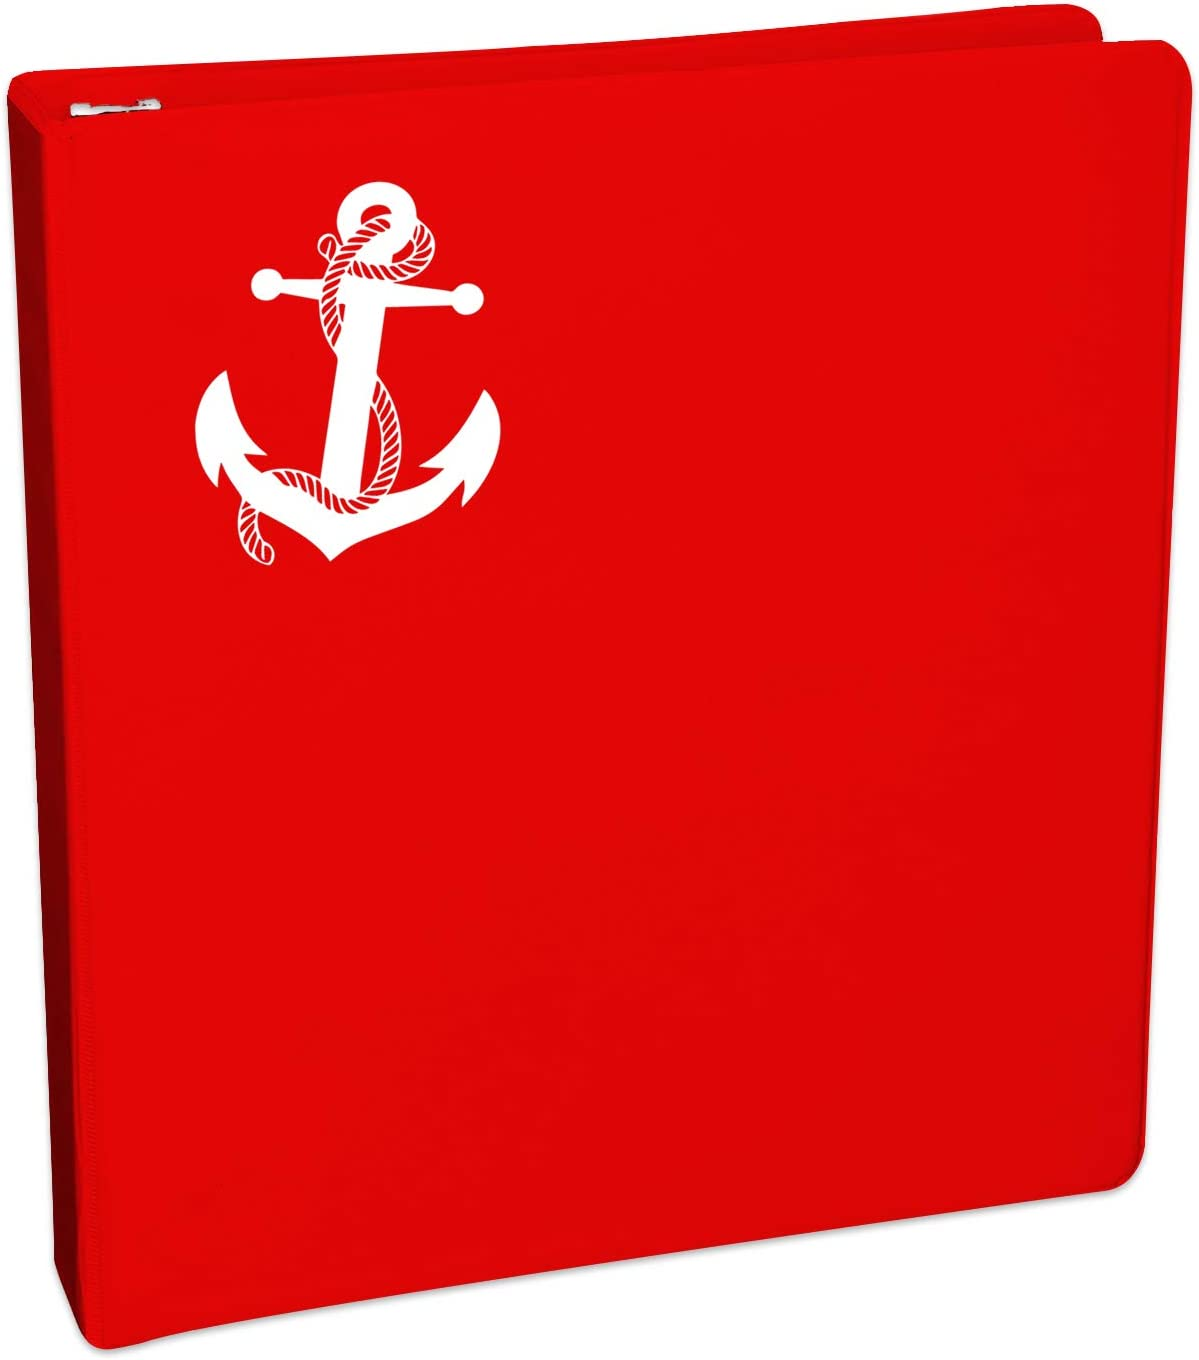 White Anchor /& Rope Chain Boat Ship Sticker Decal Notebook Car Laptop 5 Bargain Max Decals